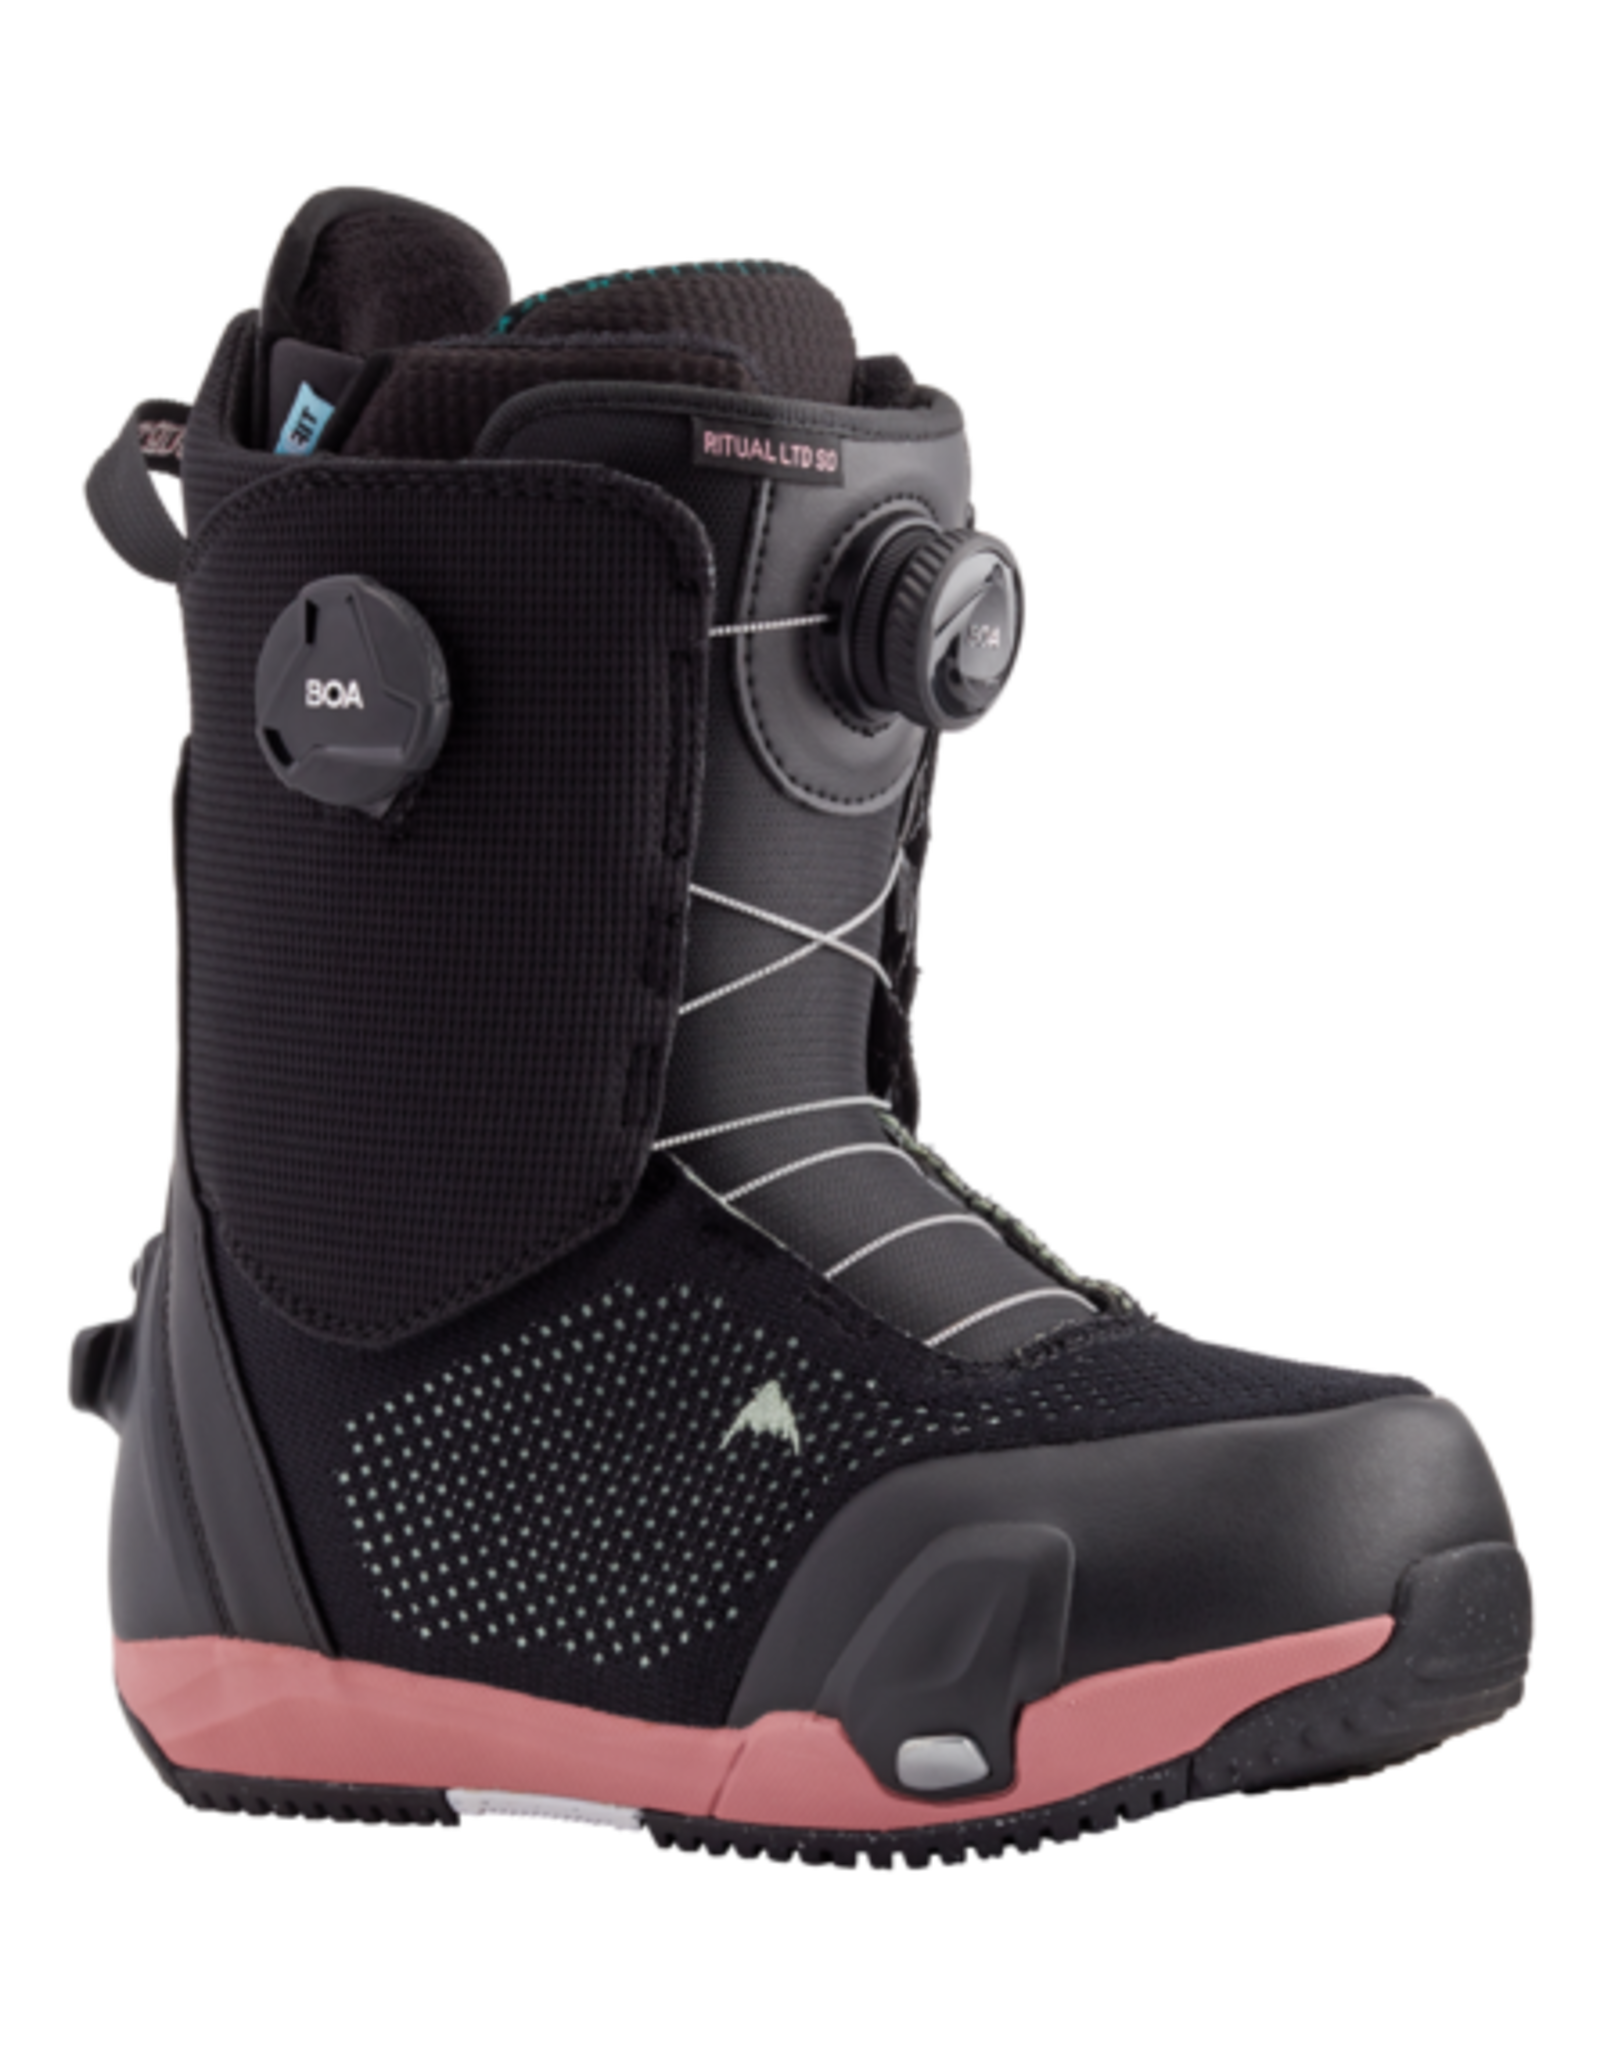 BURTON 2021 RITUAL LTD STEP ON